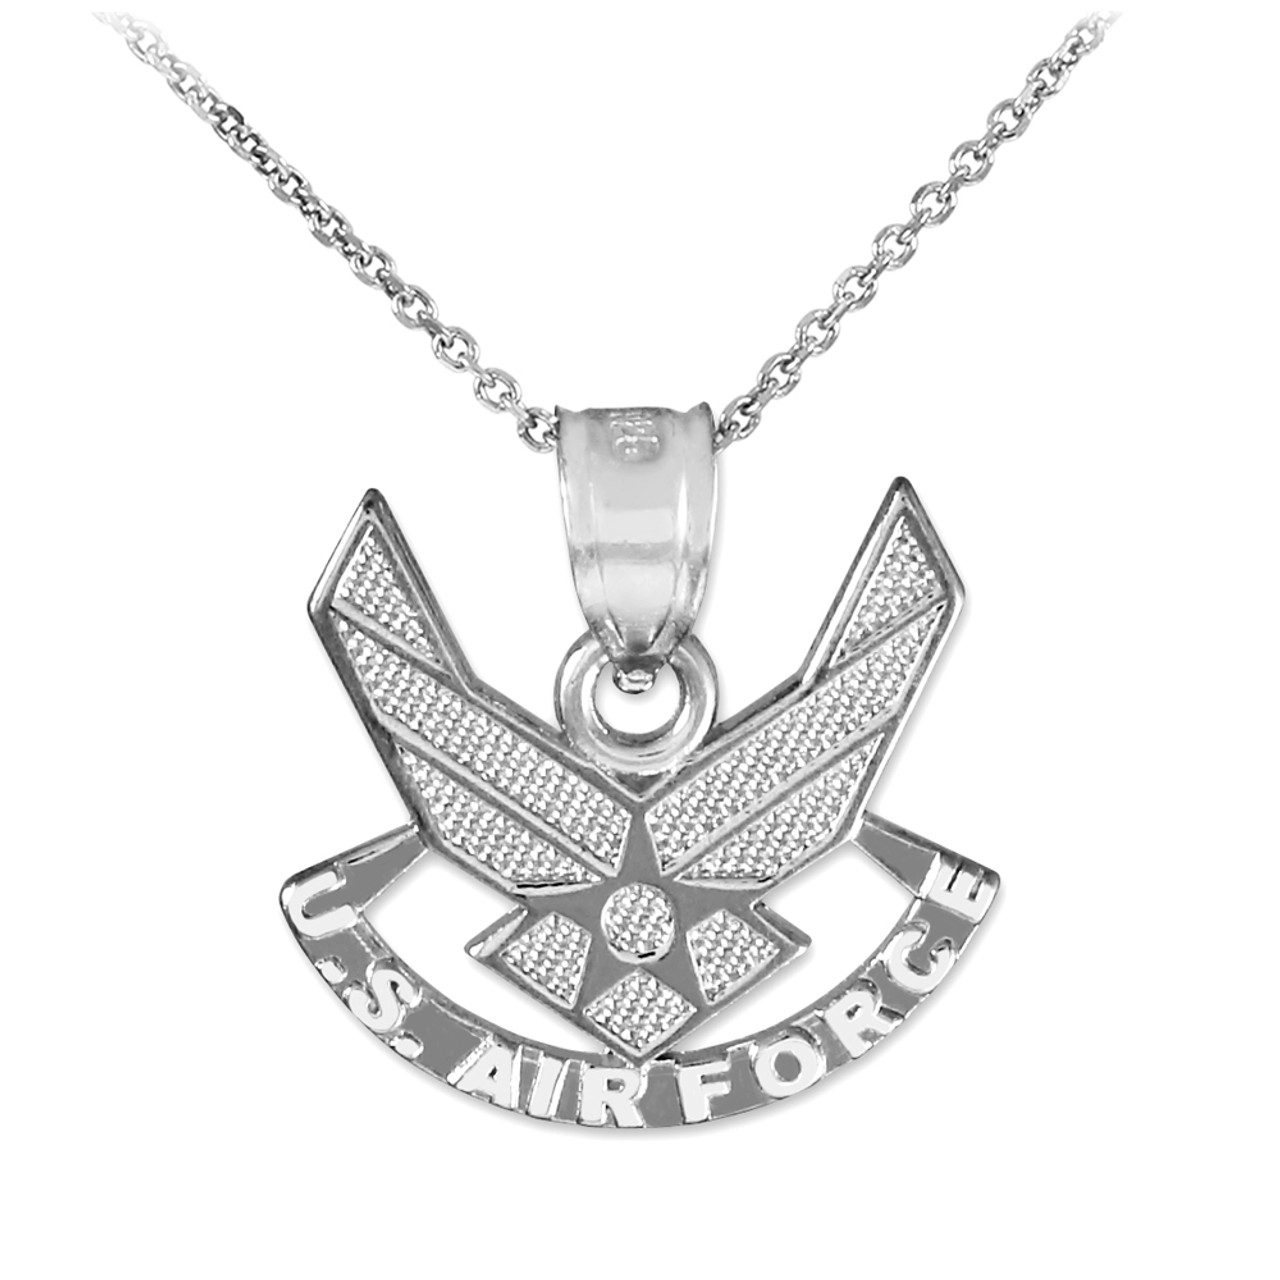 White gold us air force wings pendant white gold us air force wings pendant necklace aloadofball Choice Image